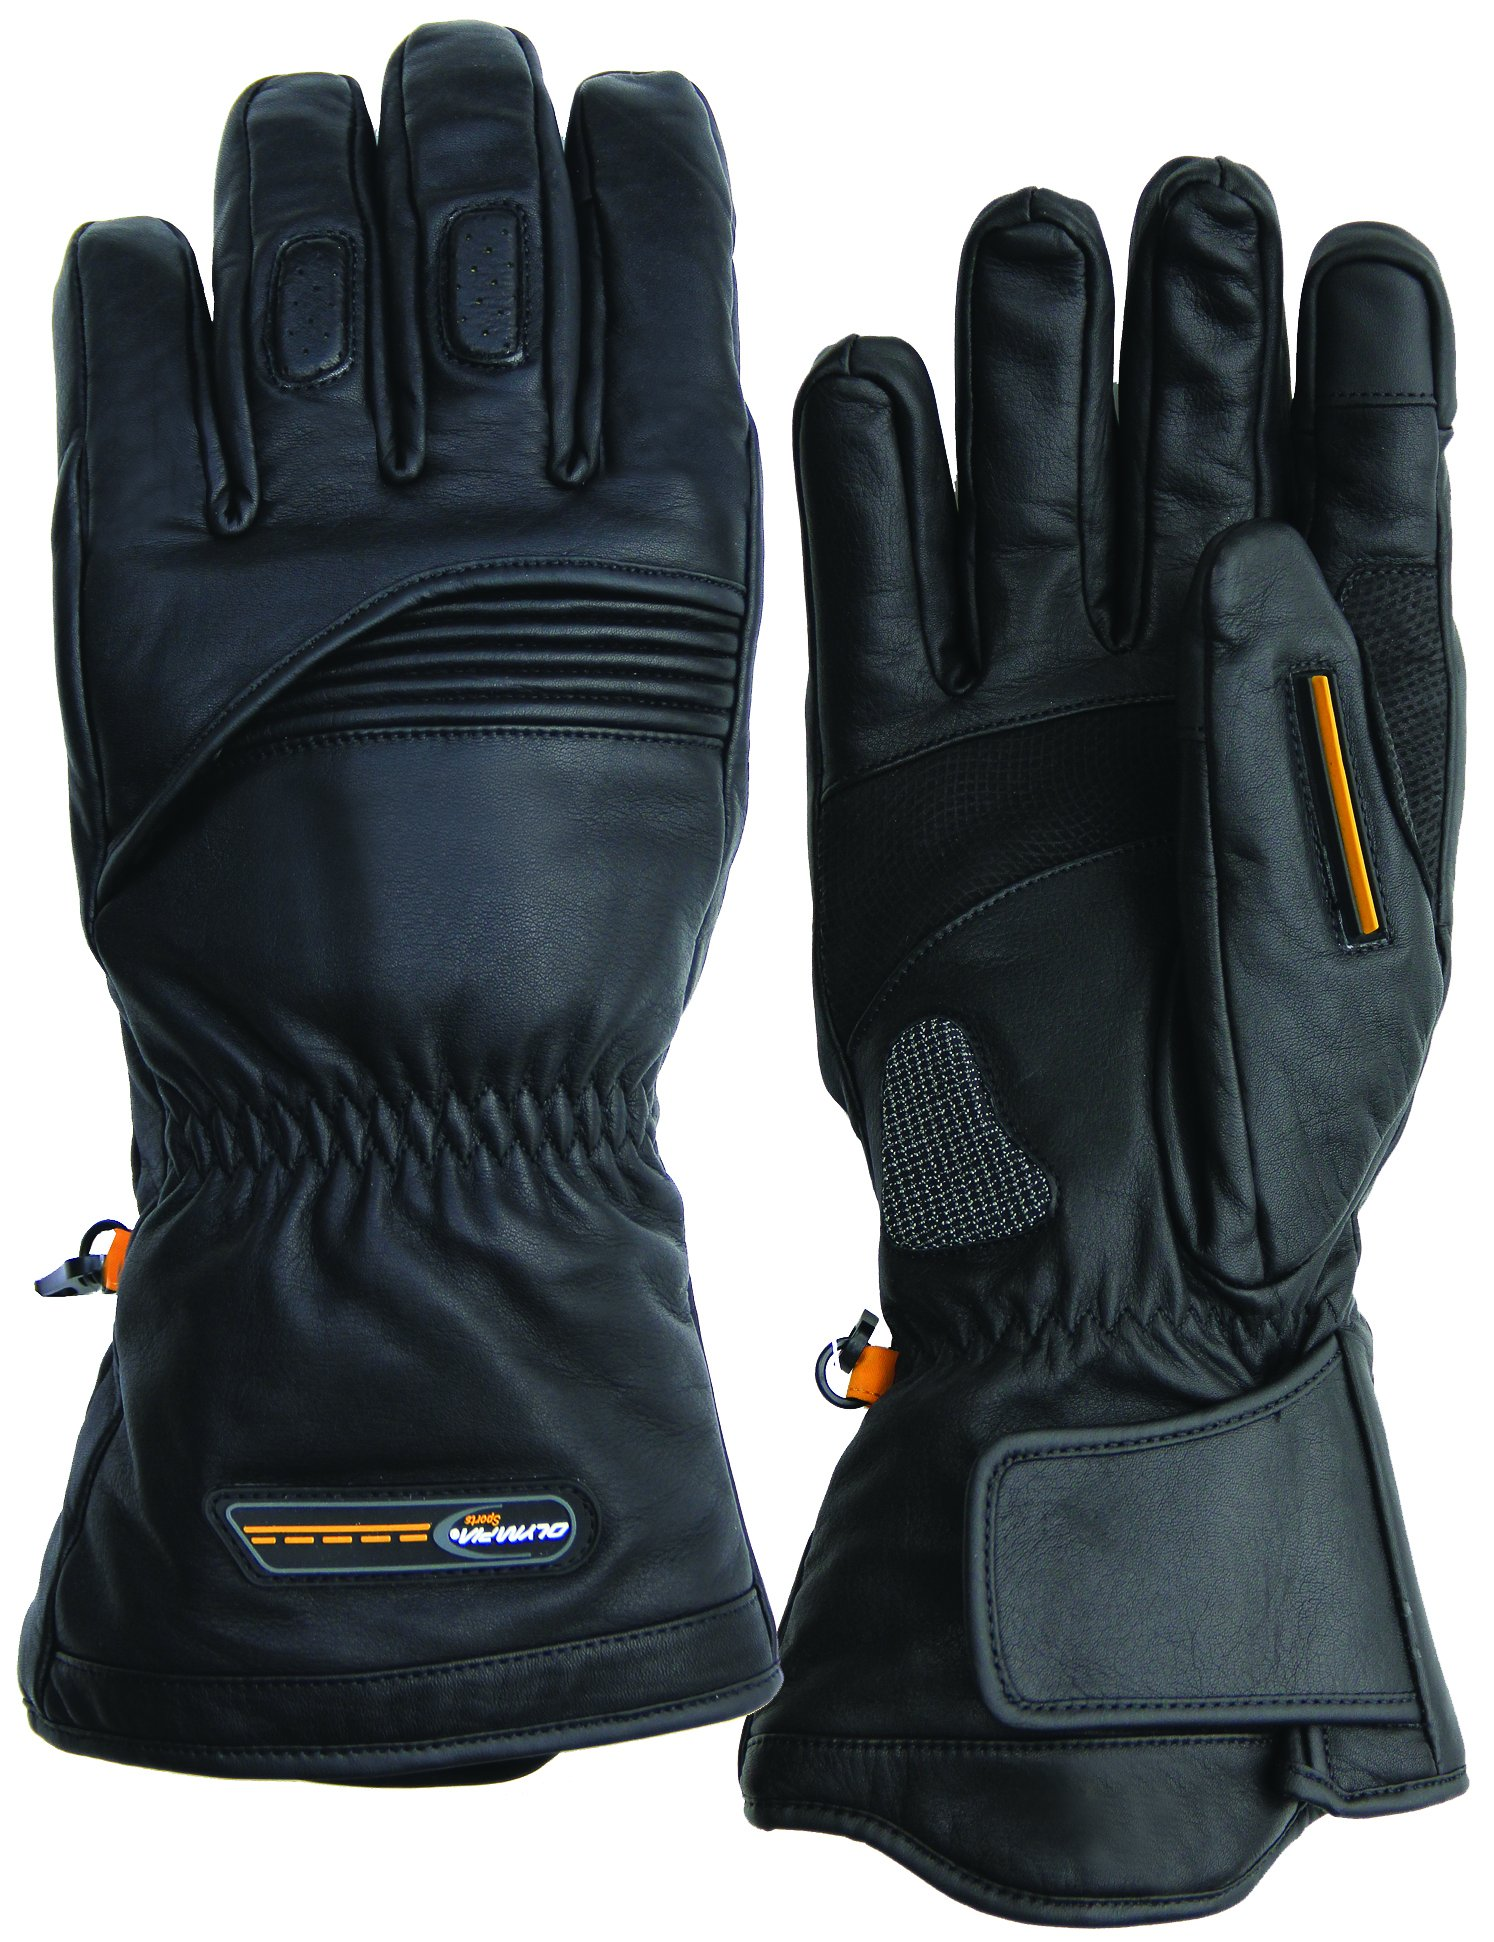 Olympia Sports Men's All Season II Touch Gloves (Black, Large)